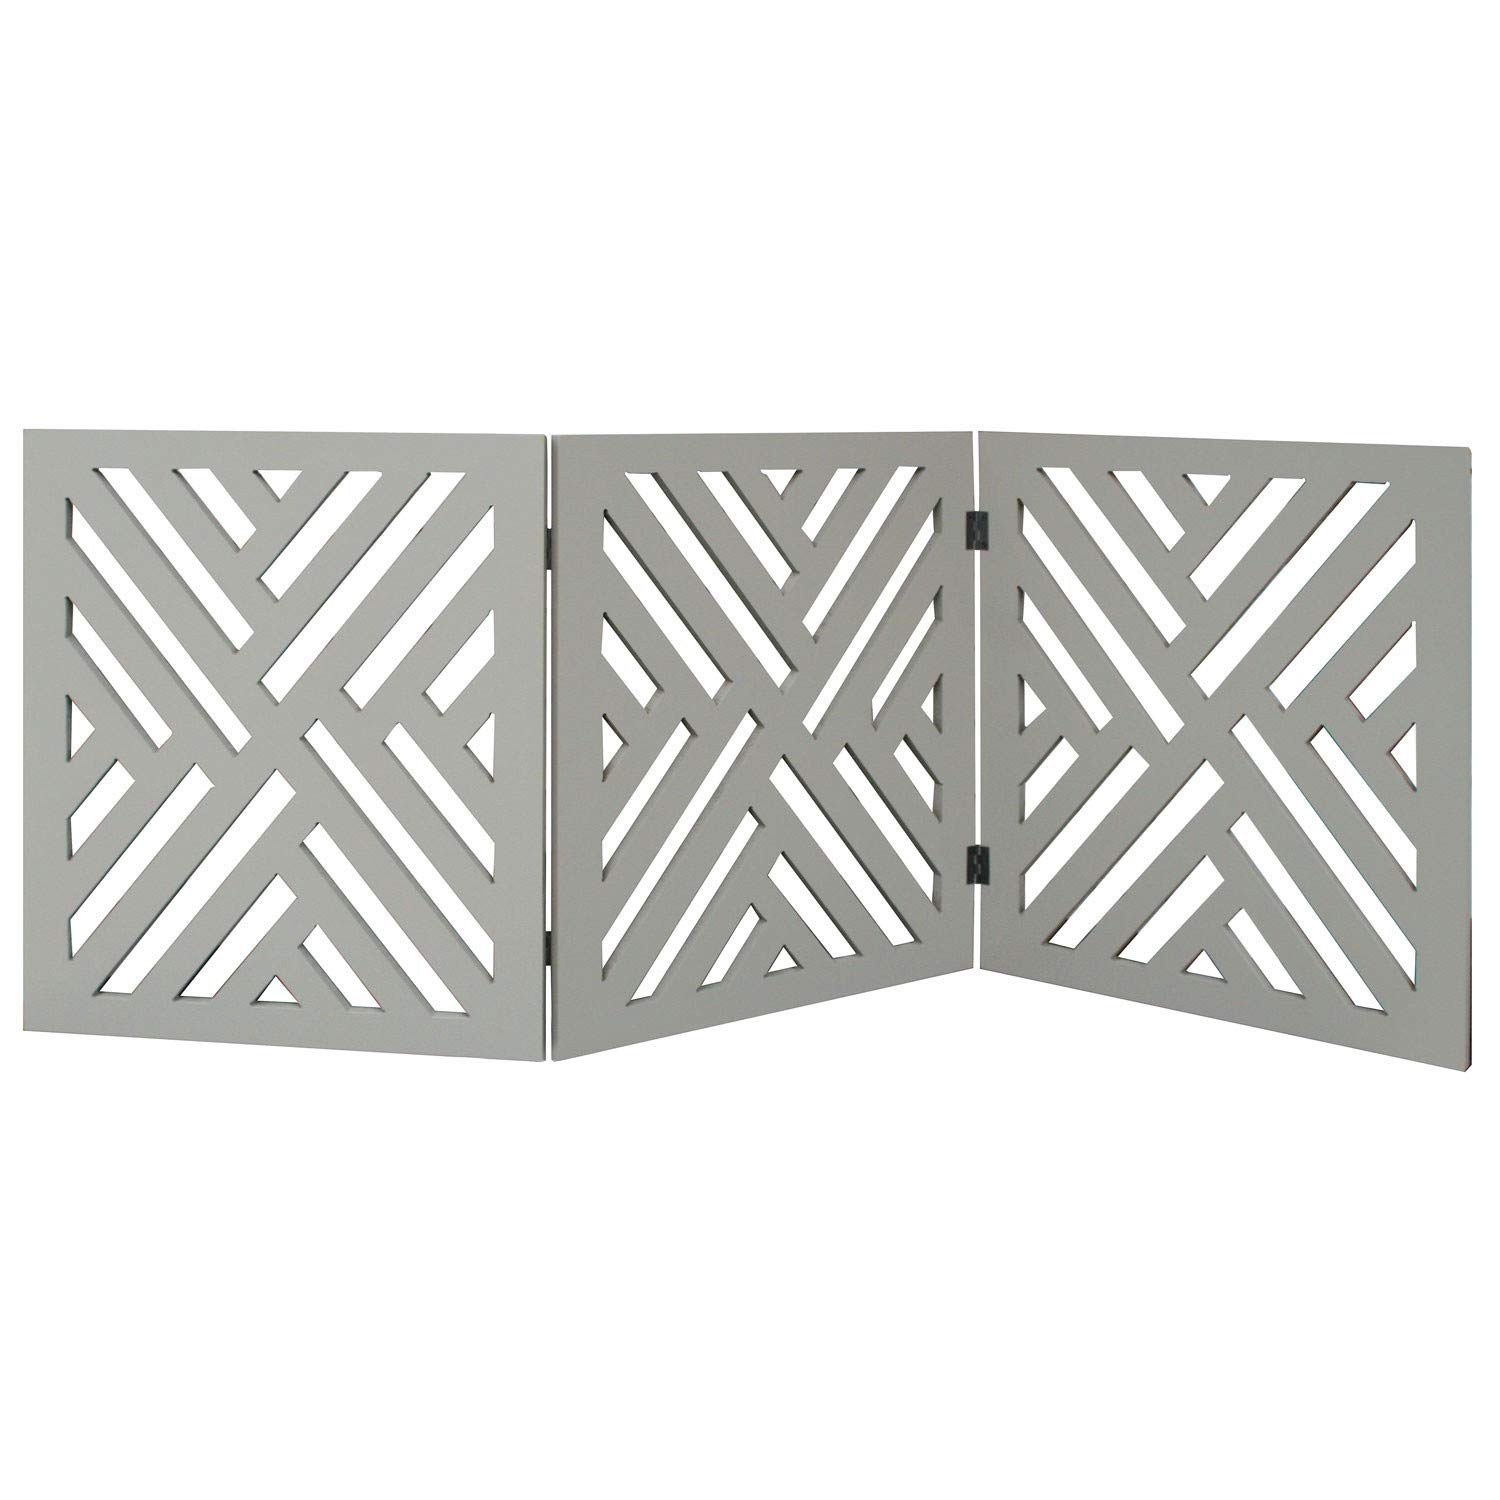 Etna 3-Panel Lattice Design Wooden Pet Gate - Freestanding Tri Fold Dog Fence for Doorways, Stairs - Indoor/Outdoor Decorative Pet Barrier - 46.2'' Wide x 15.75'' Tall by Etna